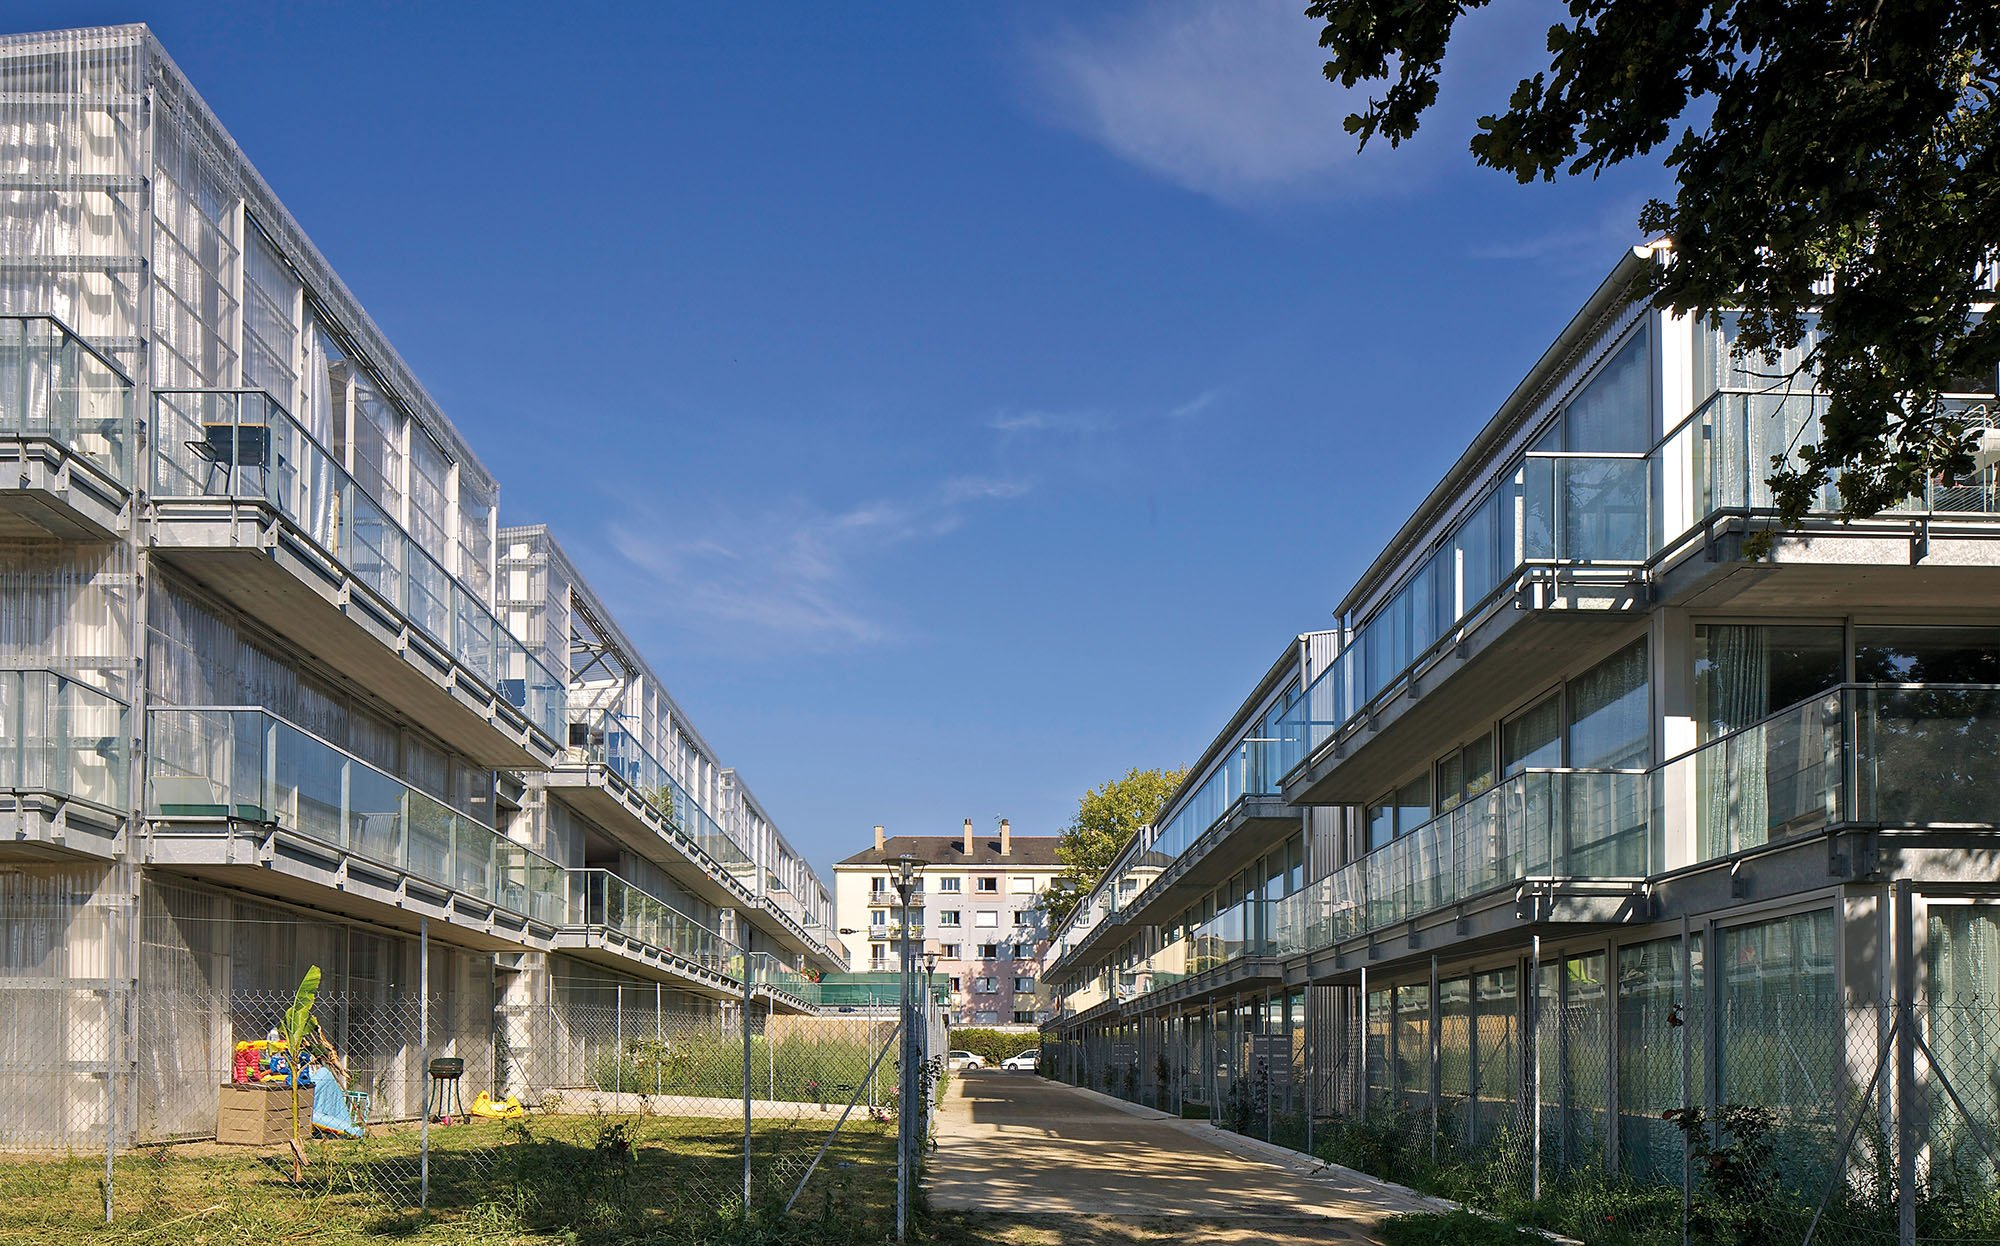 53 Units, Low-Rise Apartments, Social Housing, photo courtesy of Philippe Ruault